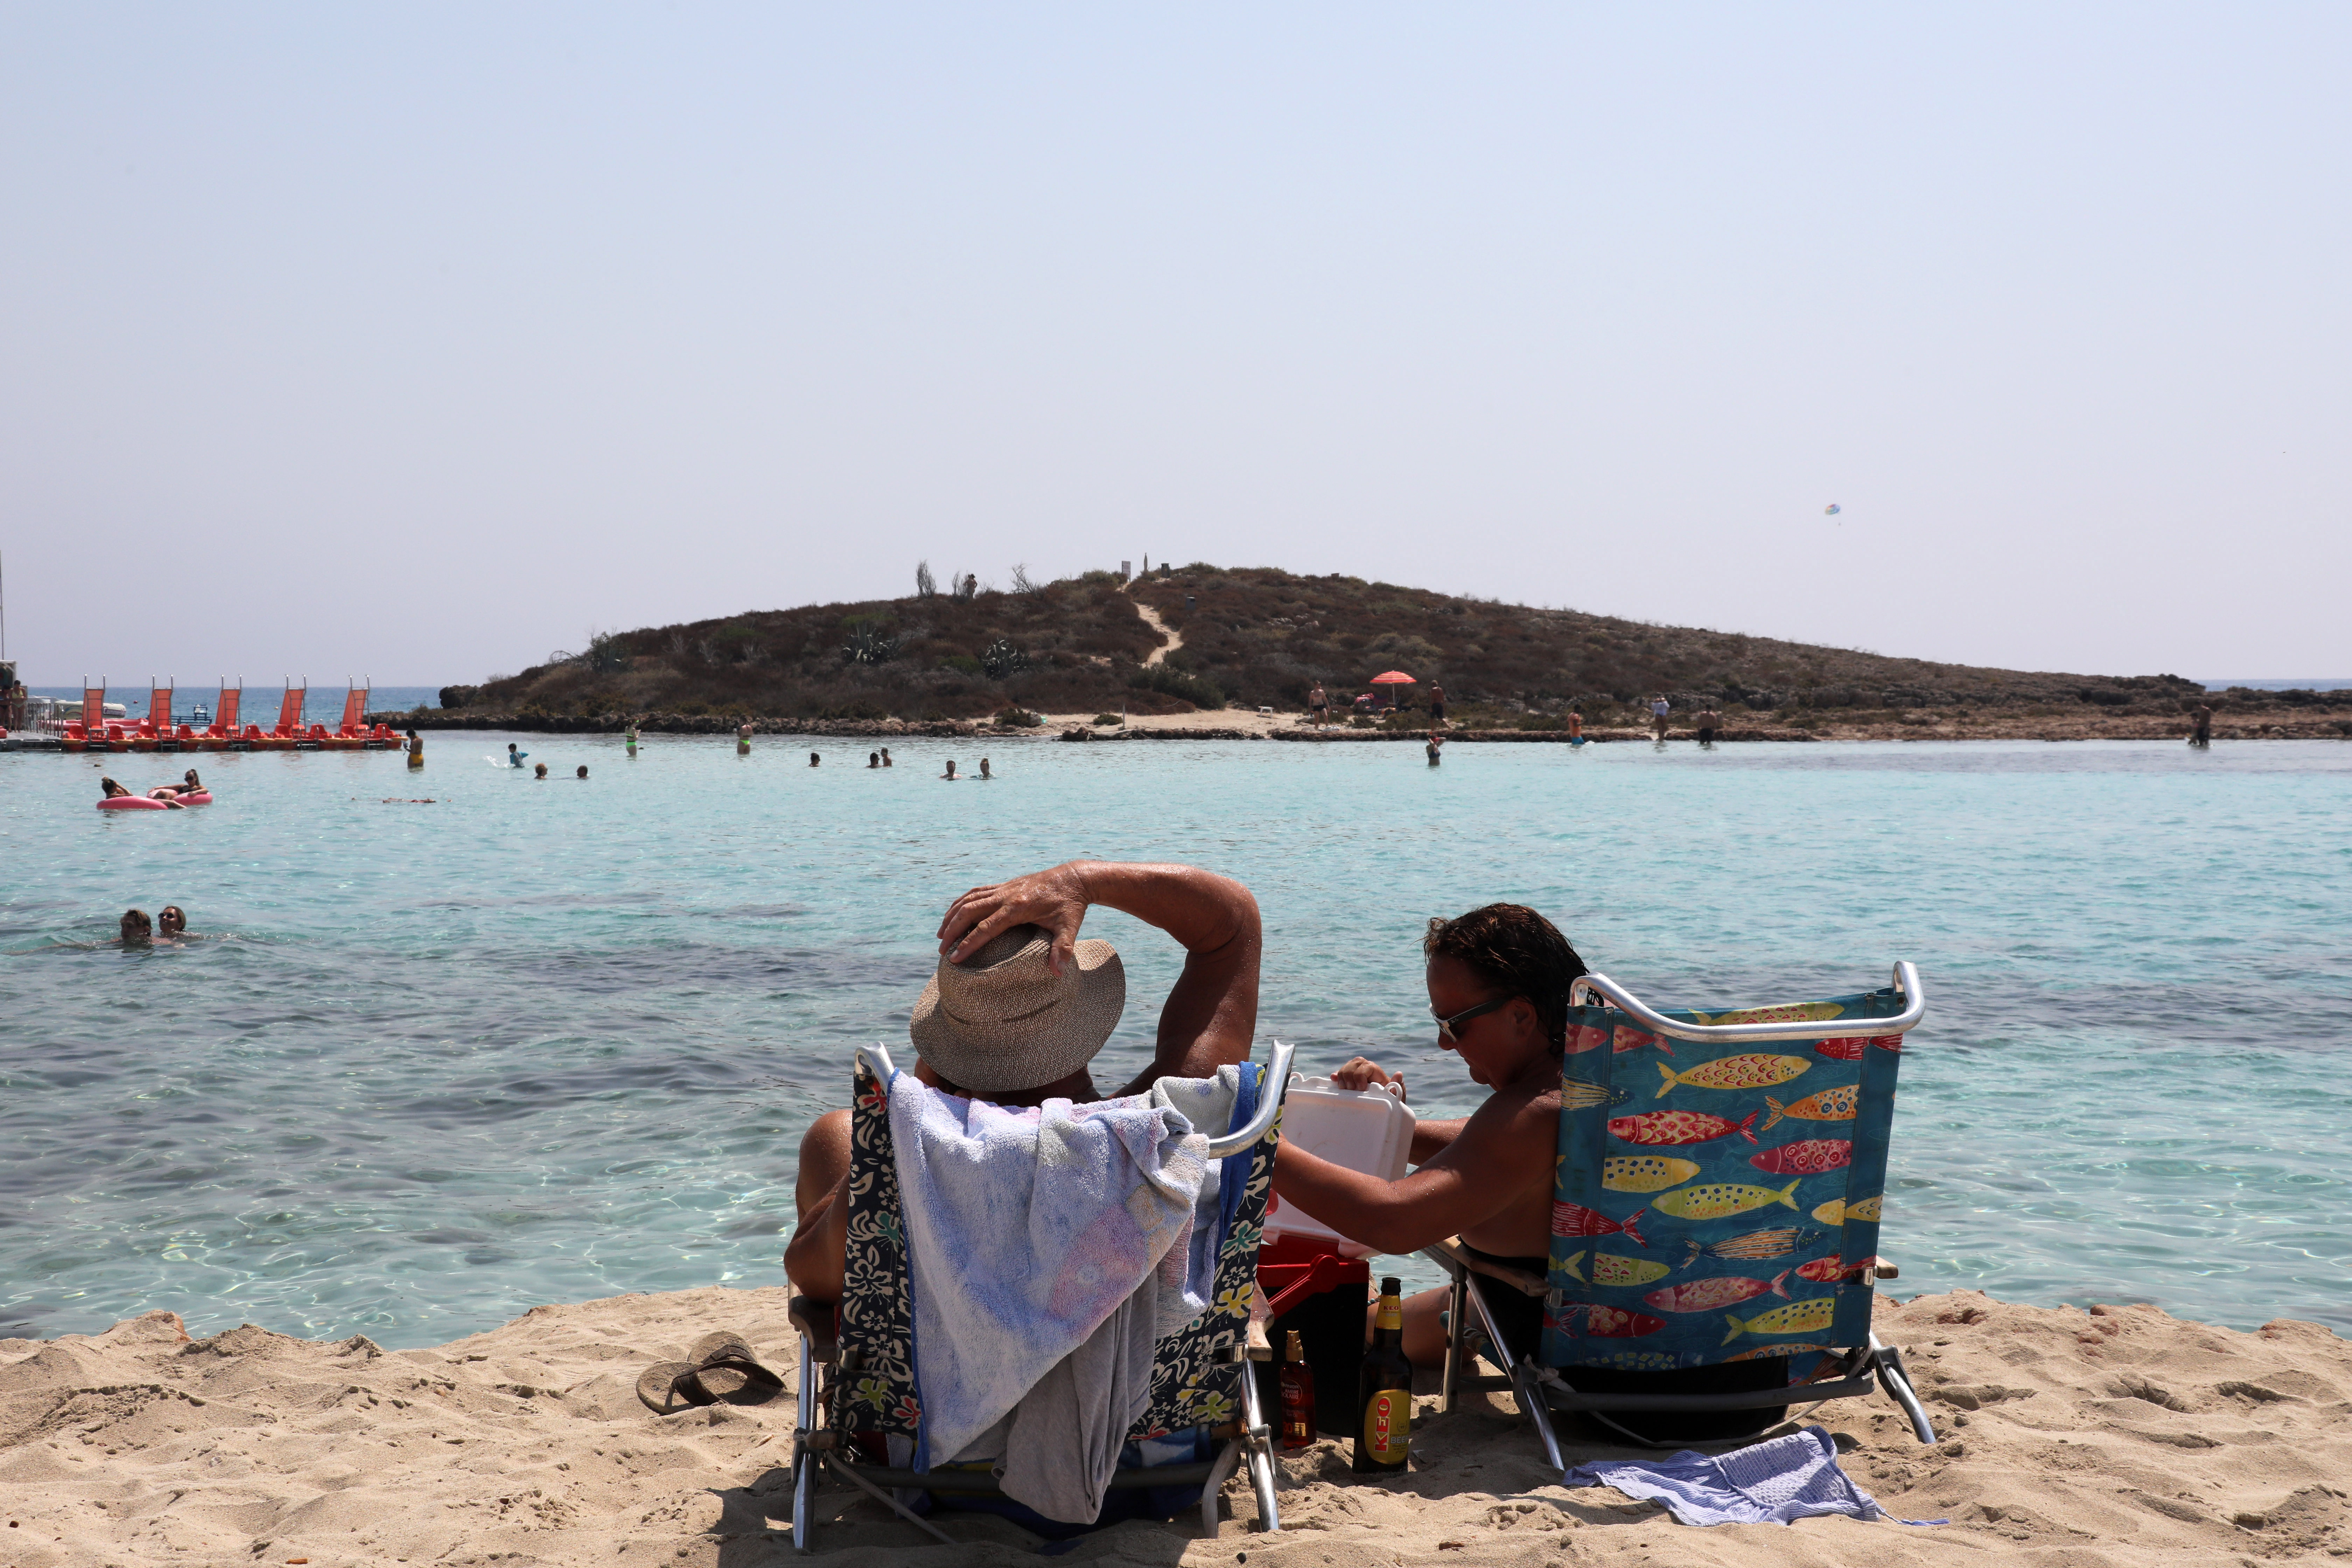 Brits will have to quarantine when returning from Cyprus from Sunday